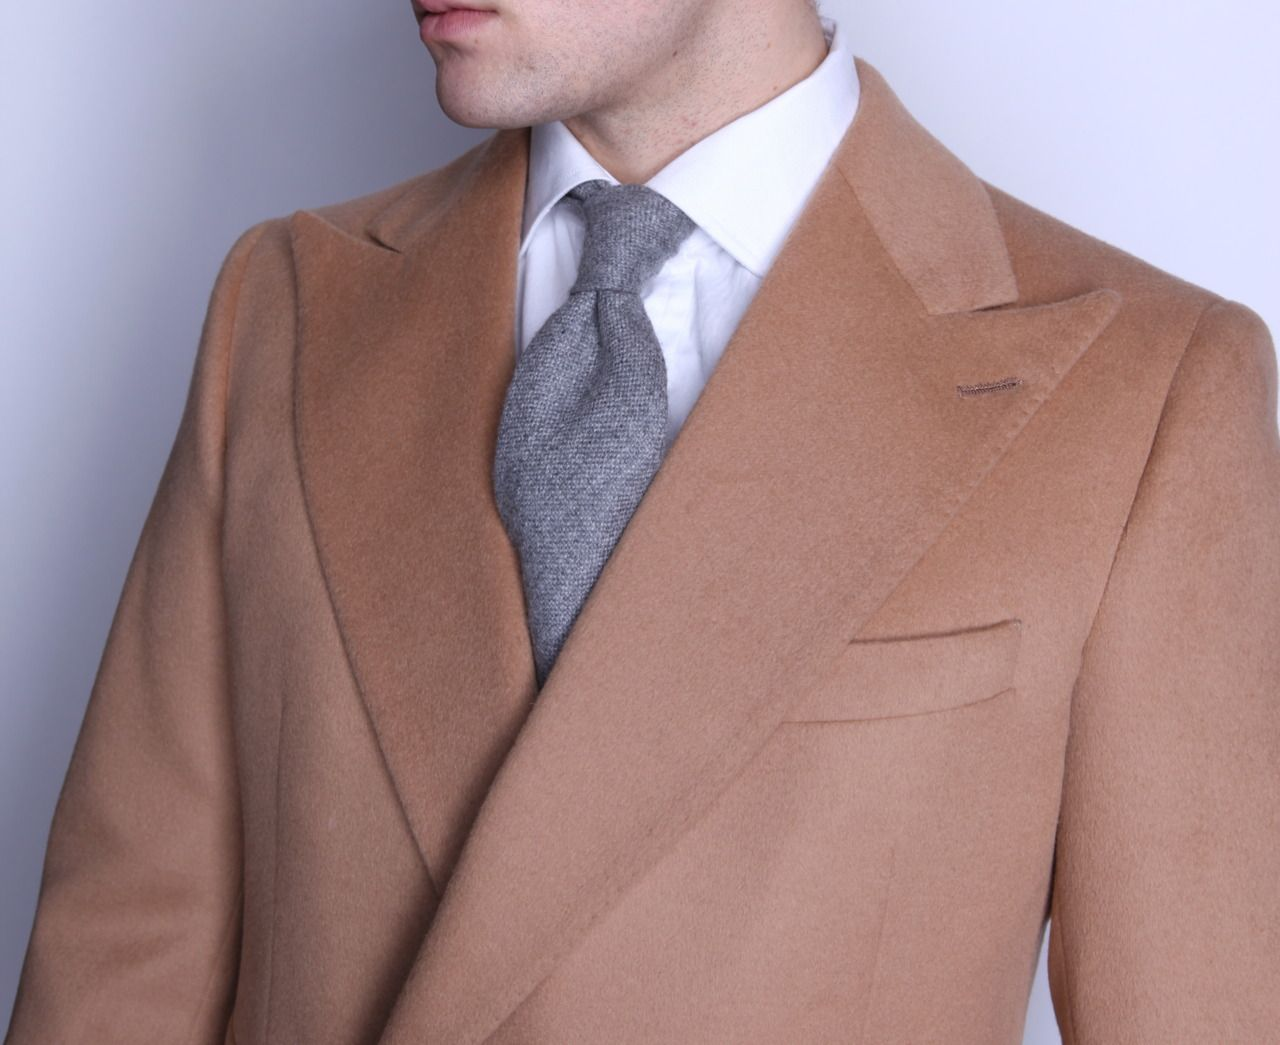 643182a759ed Grey (or gray) is an achromatic or neutral color. The necktie (or ...